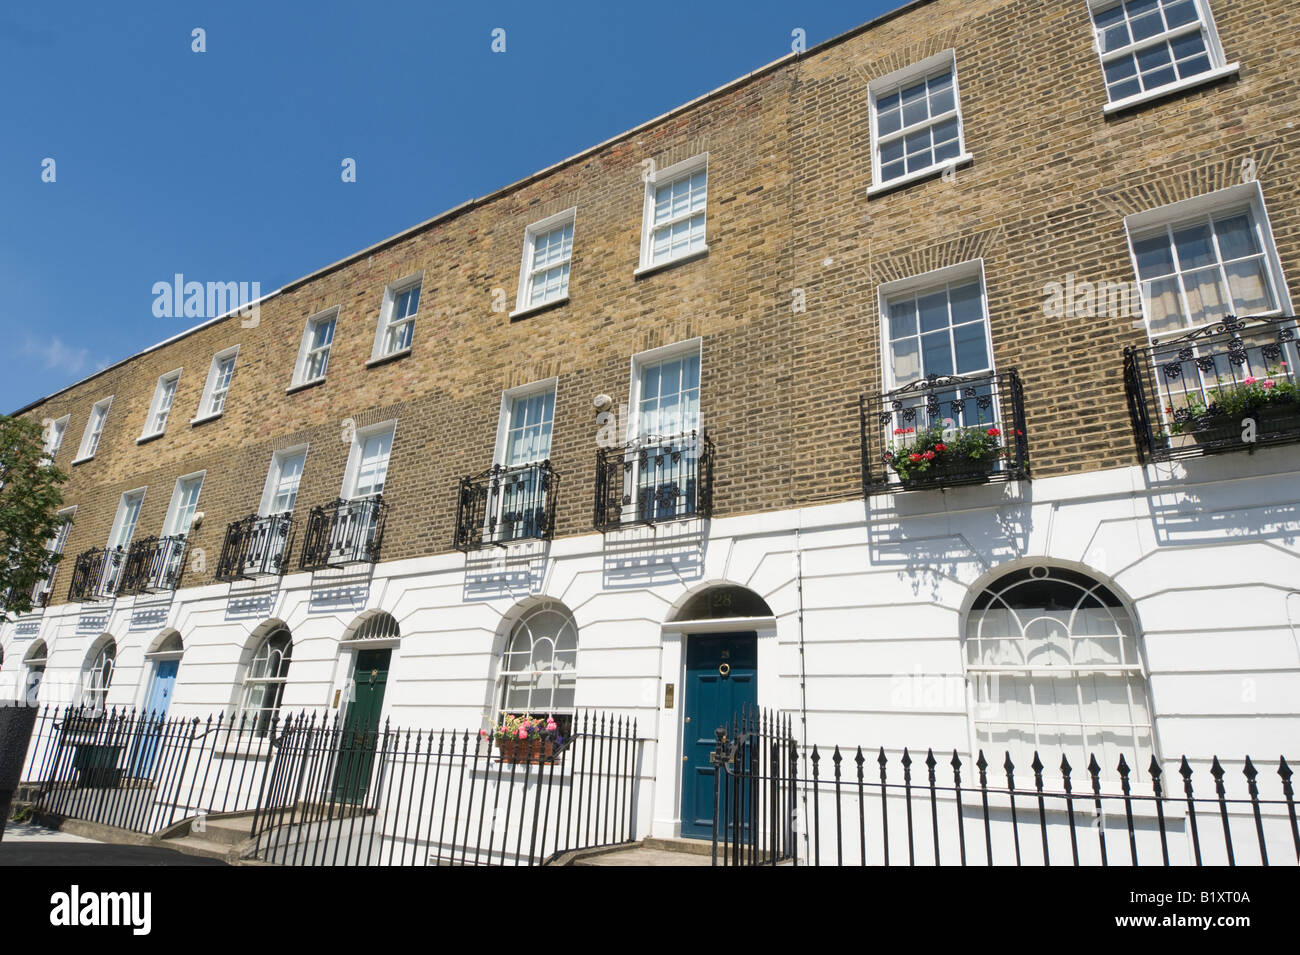 Typical Terrace Houses Islington London - Stock Image